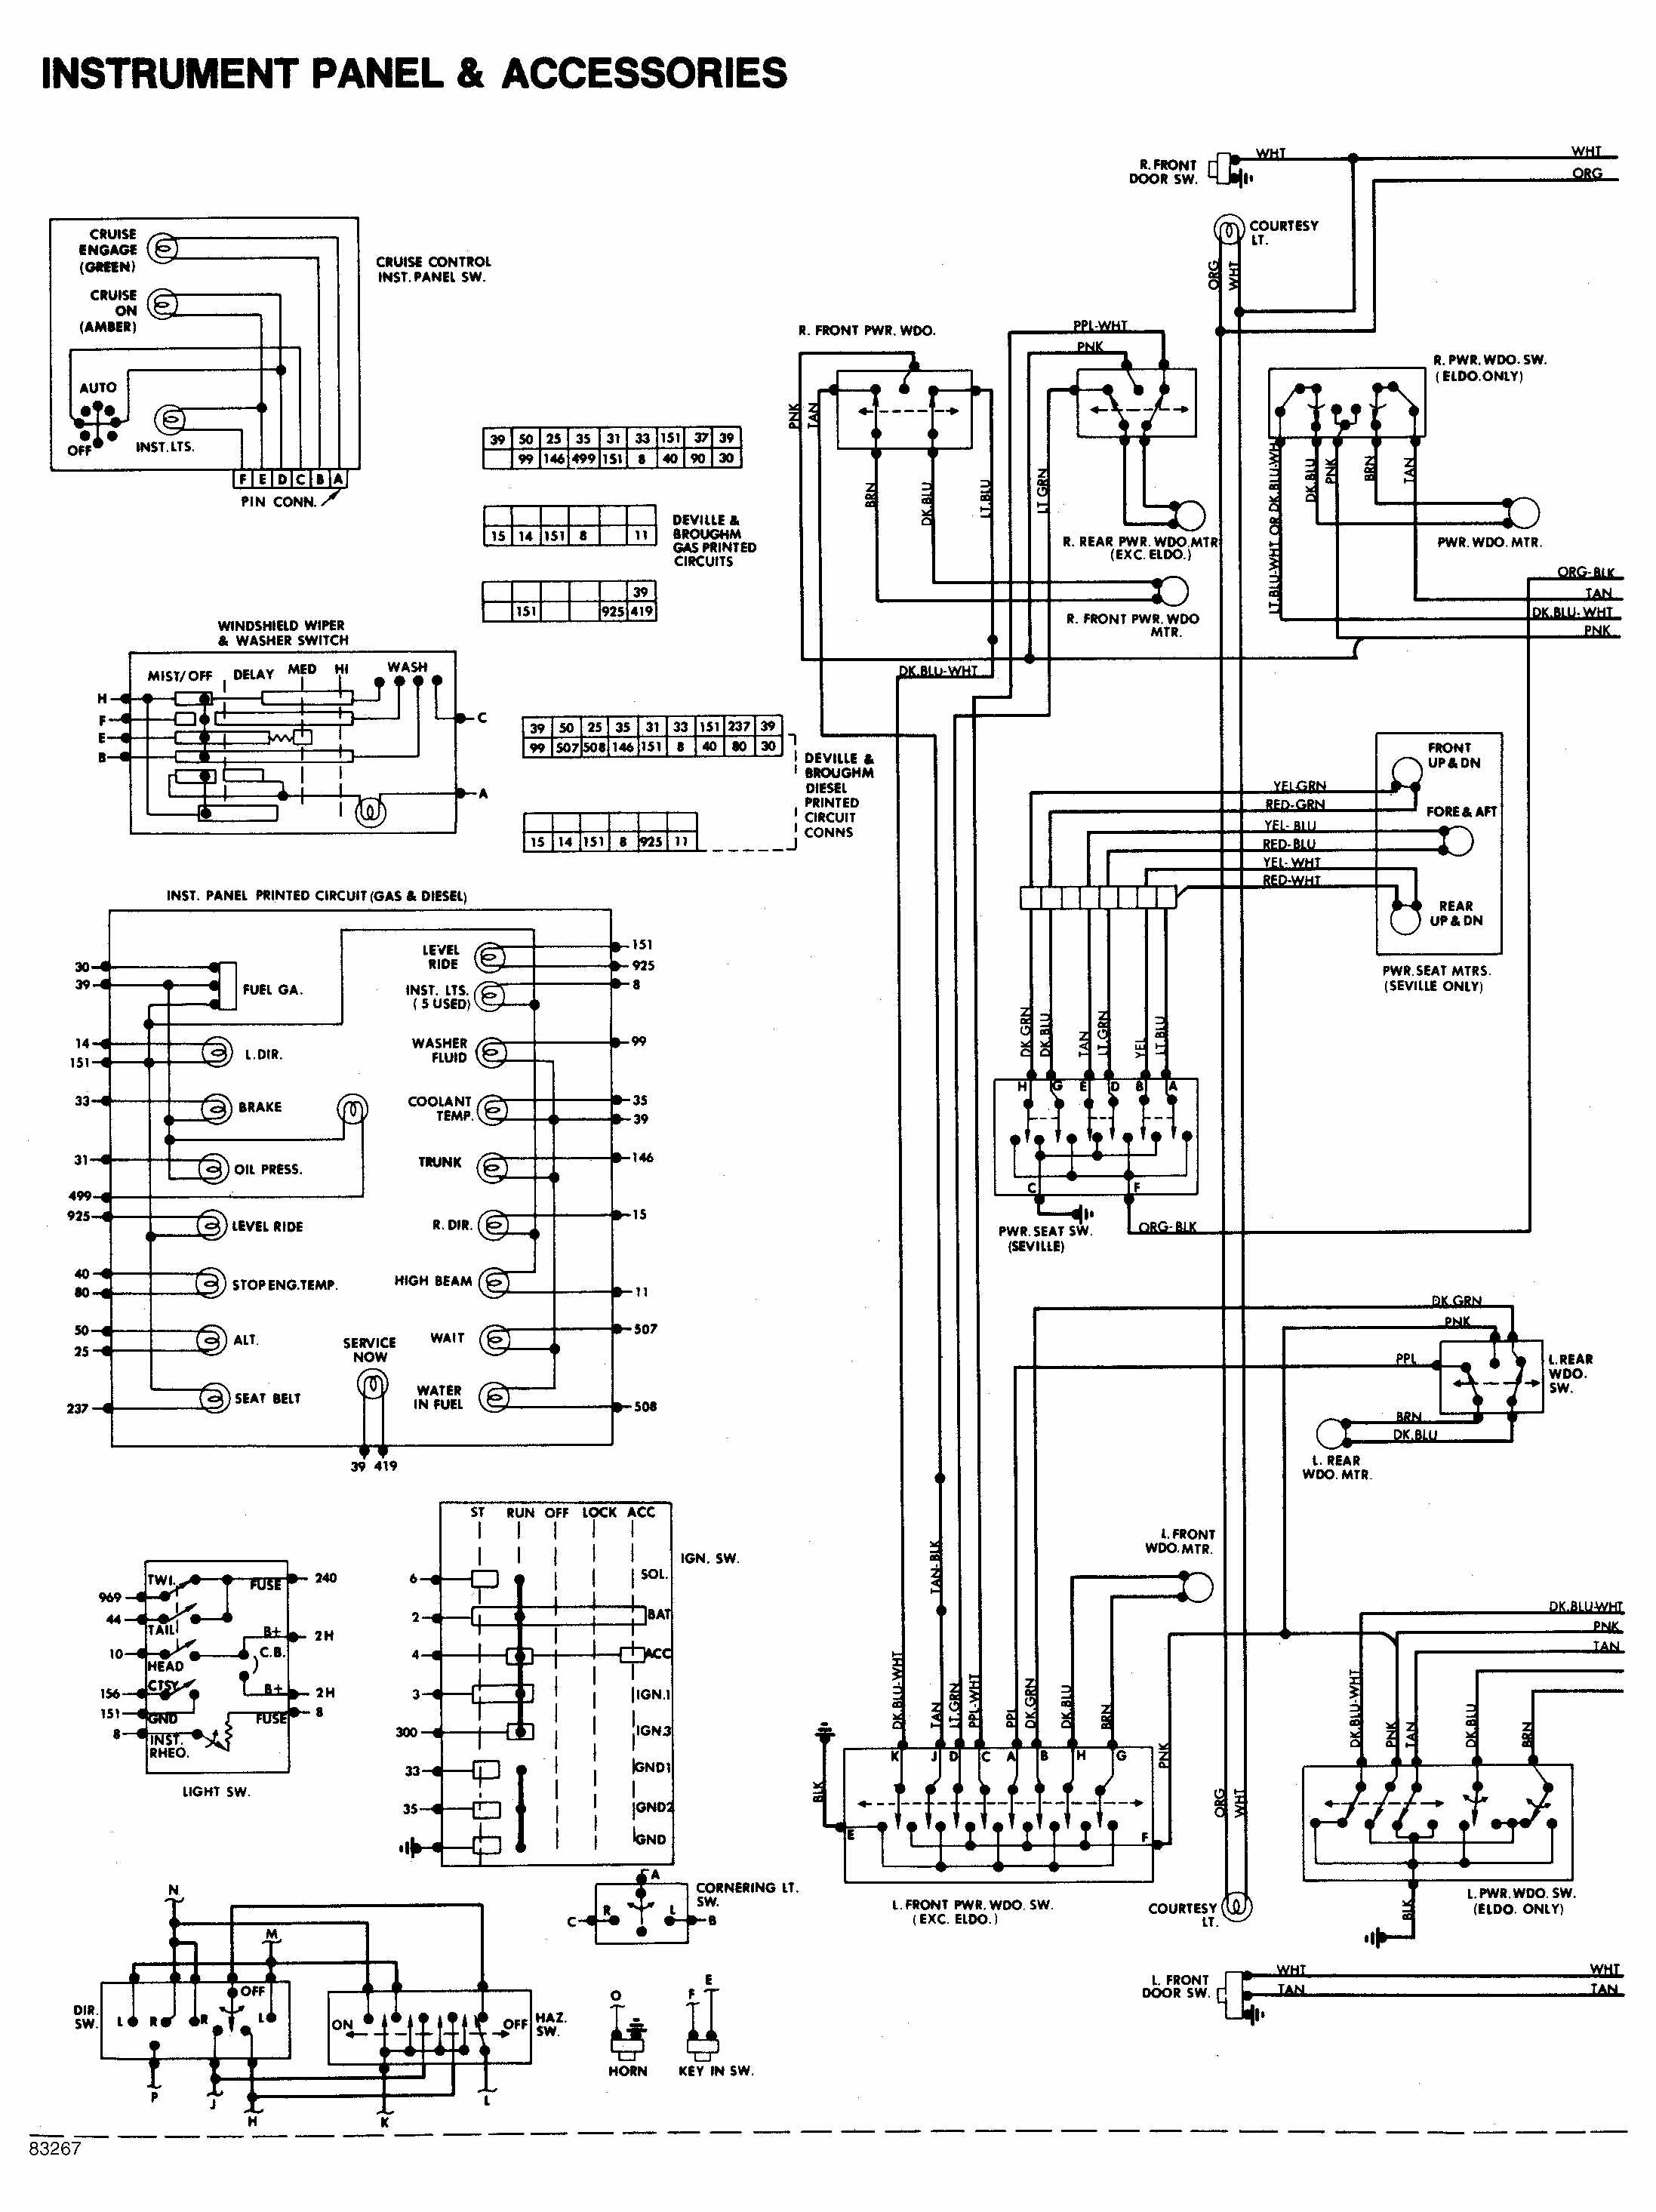 1984 Cadillac Deville Instrument panel and accessories wiring diagram -  Drawing A